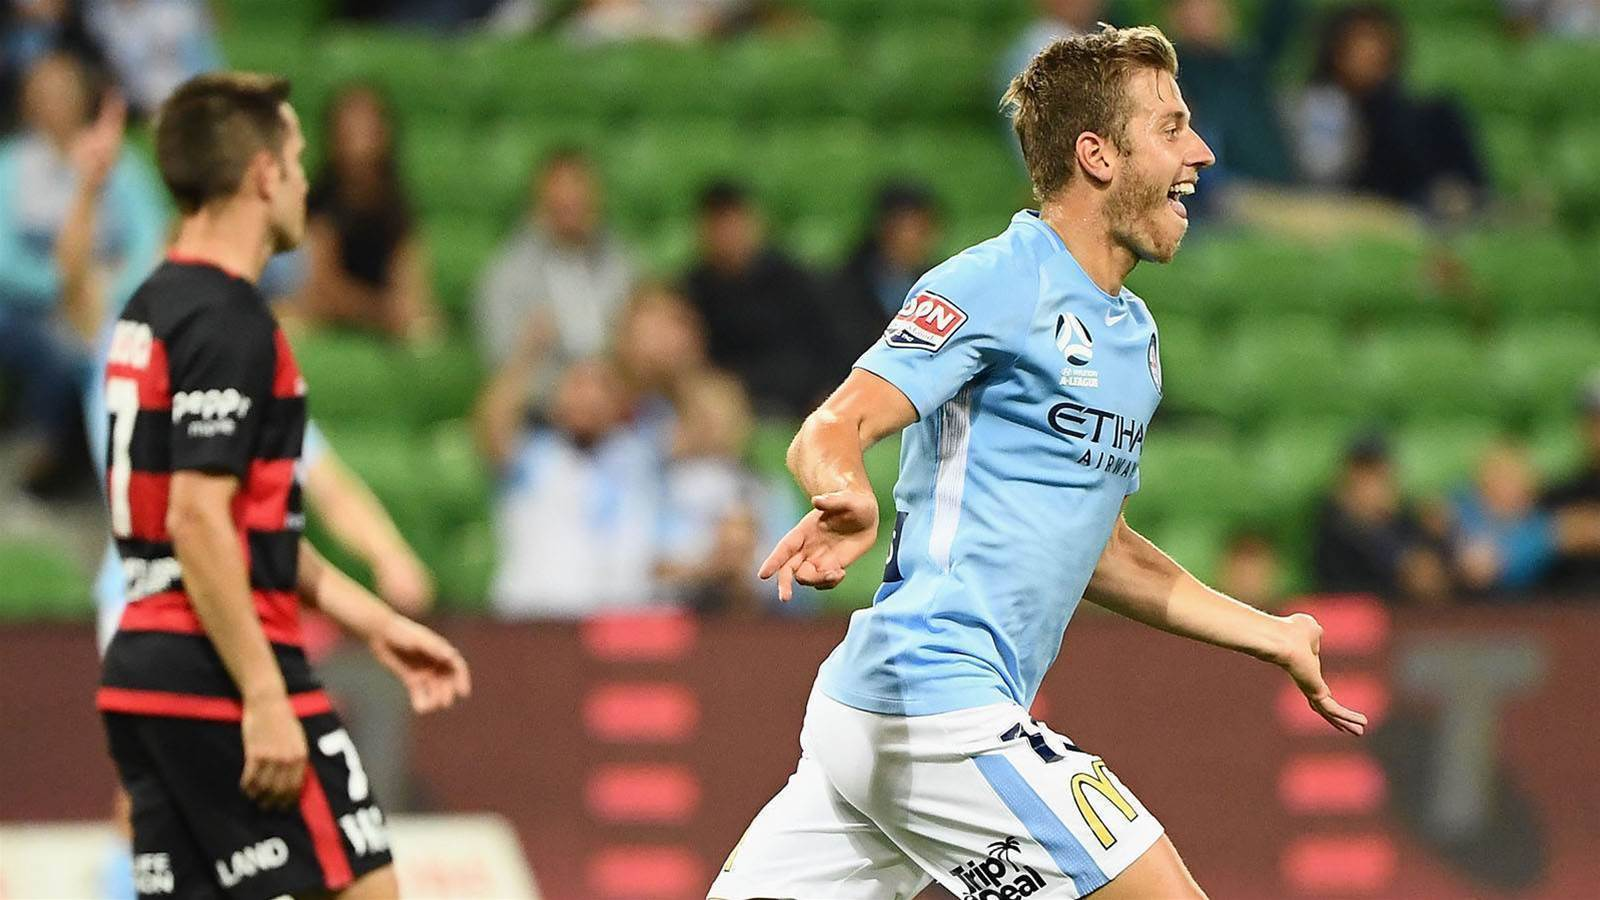 City v Wanderers Player Ratings